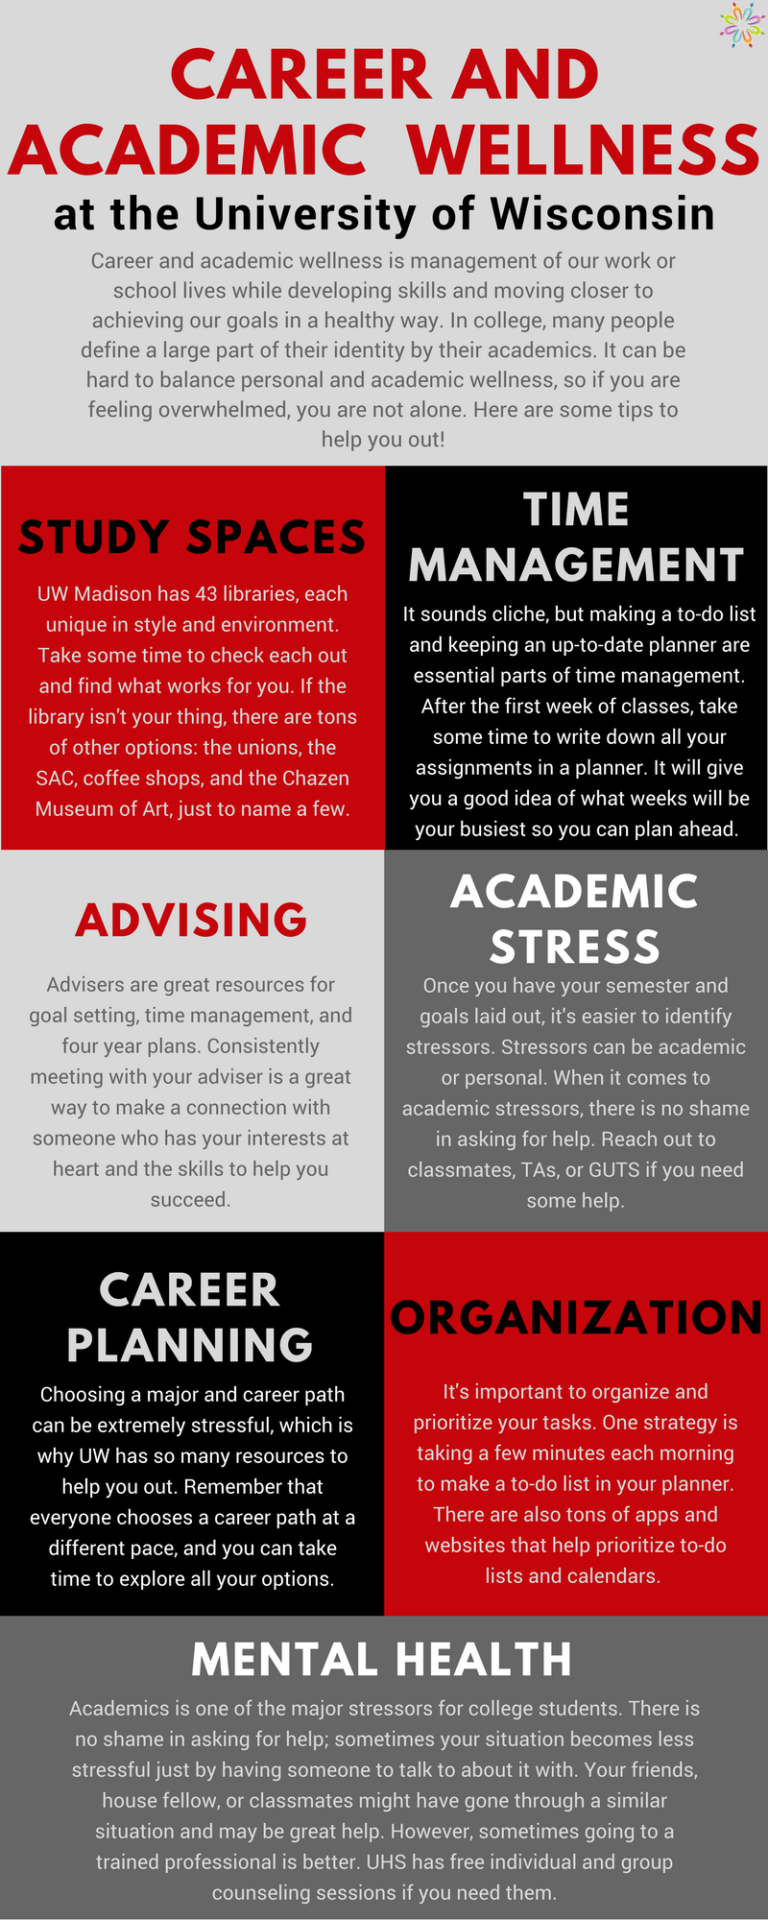 Career and academic wellness at the University of Wisconsin: Career and academic wellness is management of our work or school lives while developing skills and moving closer to achieving our goals in a healthy way. In college, many people define a large part of their identity by their academics. It can be hard to balance personal and academic wellness, so if you are feeling overwhelmed, you are not alone. Here are some tips to help you out! Study Spaces:UW Madison has 43 libraries, each unique in style and environment. Take some time to check each out and find what works for you. If the library isn't your thing, there are tons of other options: the unions, the SAC, coffee shops, and the Chazen Museum of Art, just to name a few. Time management: It sounds cliche, but making a to-do list and keeping an up-to-date planner are essential parts of time management. After the first week of classes, take some time to write down all your assignments in a planner. It will give you a good idea of what weeks will be your busiest so you can plan ahead. Advising: Advisers are great resources for goal setting, time management, and four year plans. Consistently meeting with your adviser is a great way to make a connection with someone who has your interests at heart and the skills to help you succeed. Academic stress: Once you have your semester and goals laid out, it's easier to identify stressors. Stressors can be academic or personal. When it comes to academic stressors, there is no shame in asking for help. Reach out to classmates, TAs, or GUTS if you need some help. Career planning: Choosing a major and career path can be extremely stressful, which is why UW has so many resources to help you out. Remember that everyone chooses a career path at a different pace, and you can take time to explore all your options. Organization: It's important to organize and prioritize your tasks. One strategy is taking a few minutes each morning to make a to-do list in your planner. There are als